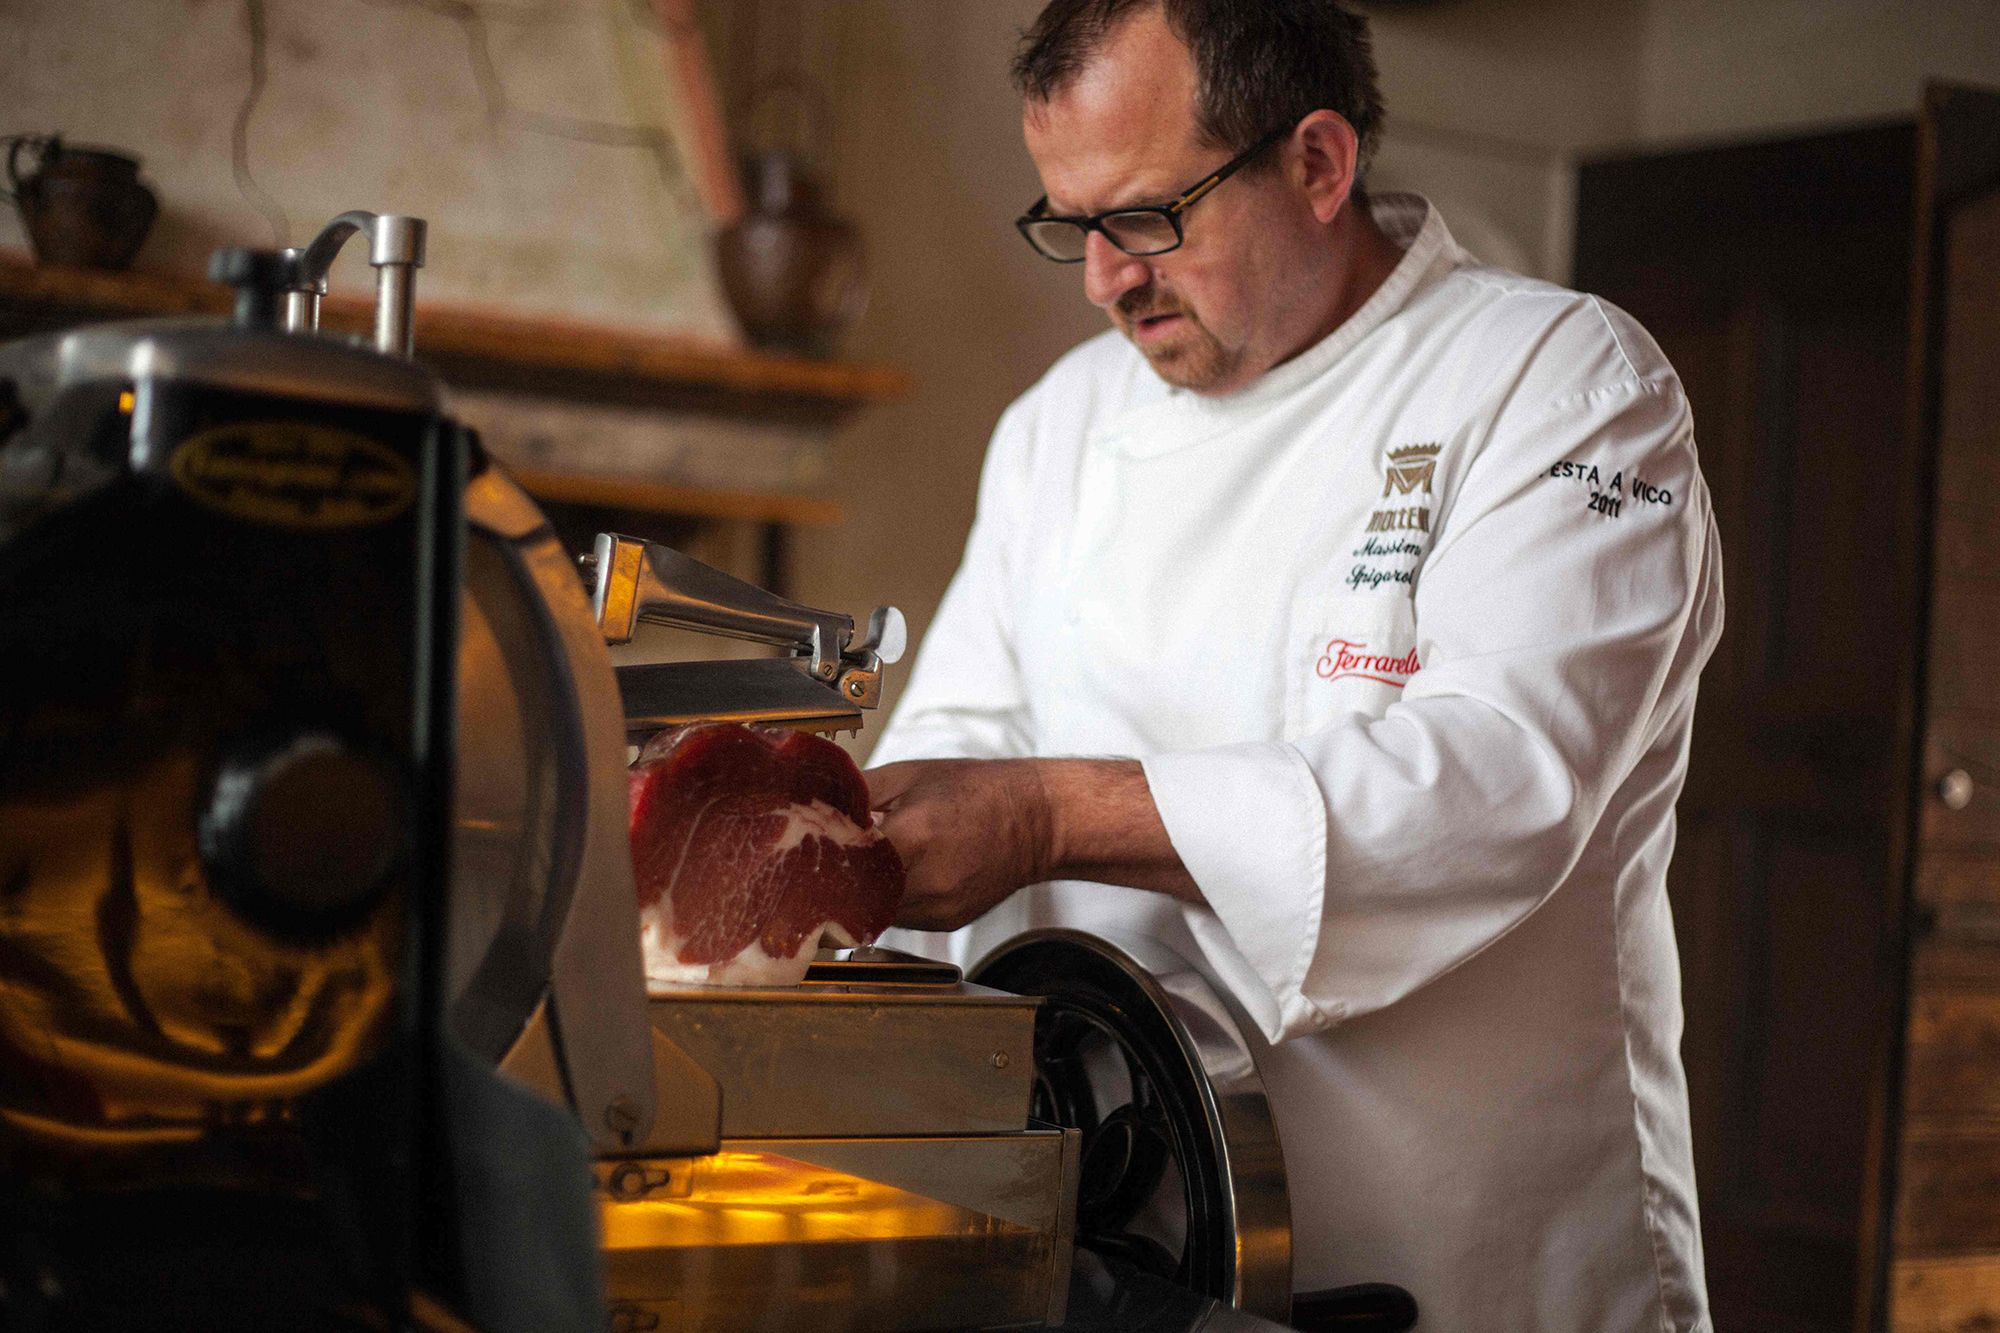 Nicholini's Welcomes The Return Of Guest Chef Massimo Spigaroli This September